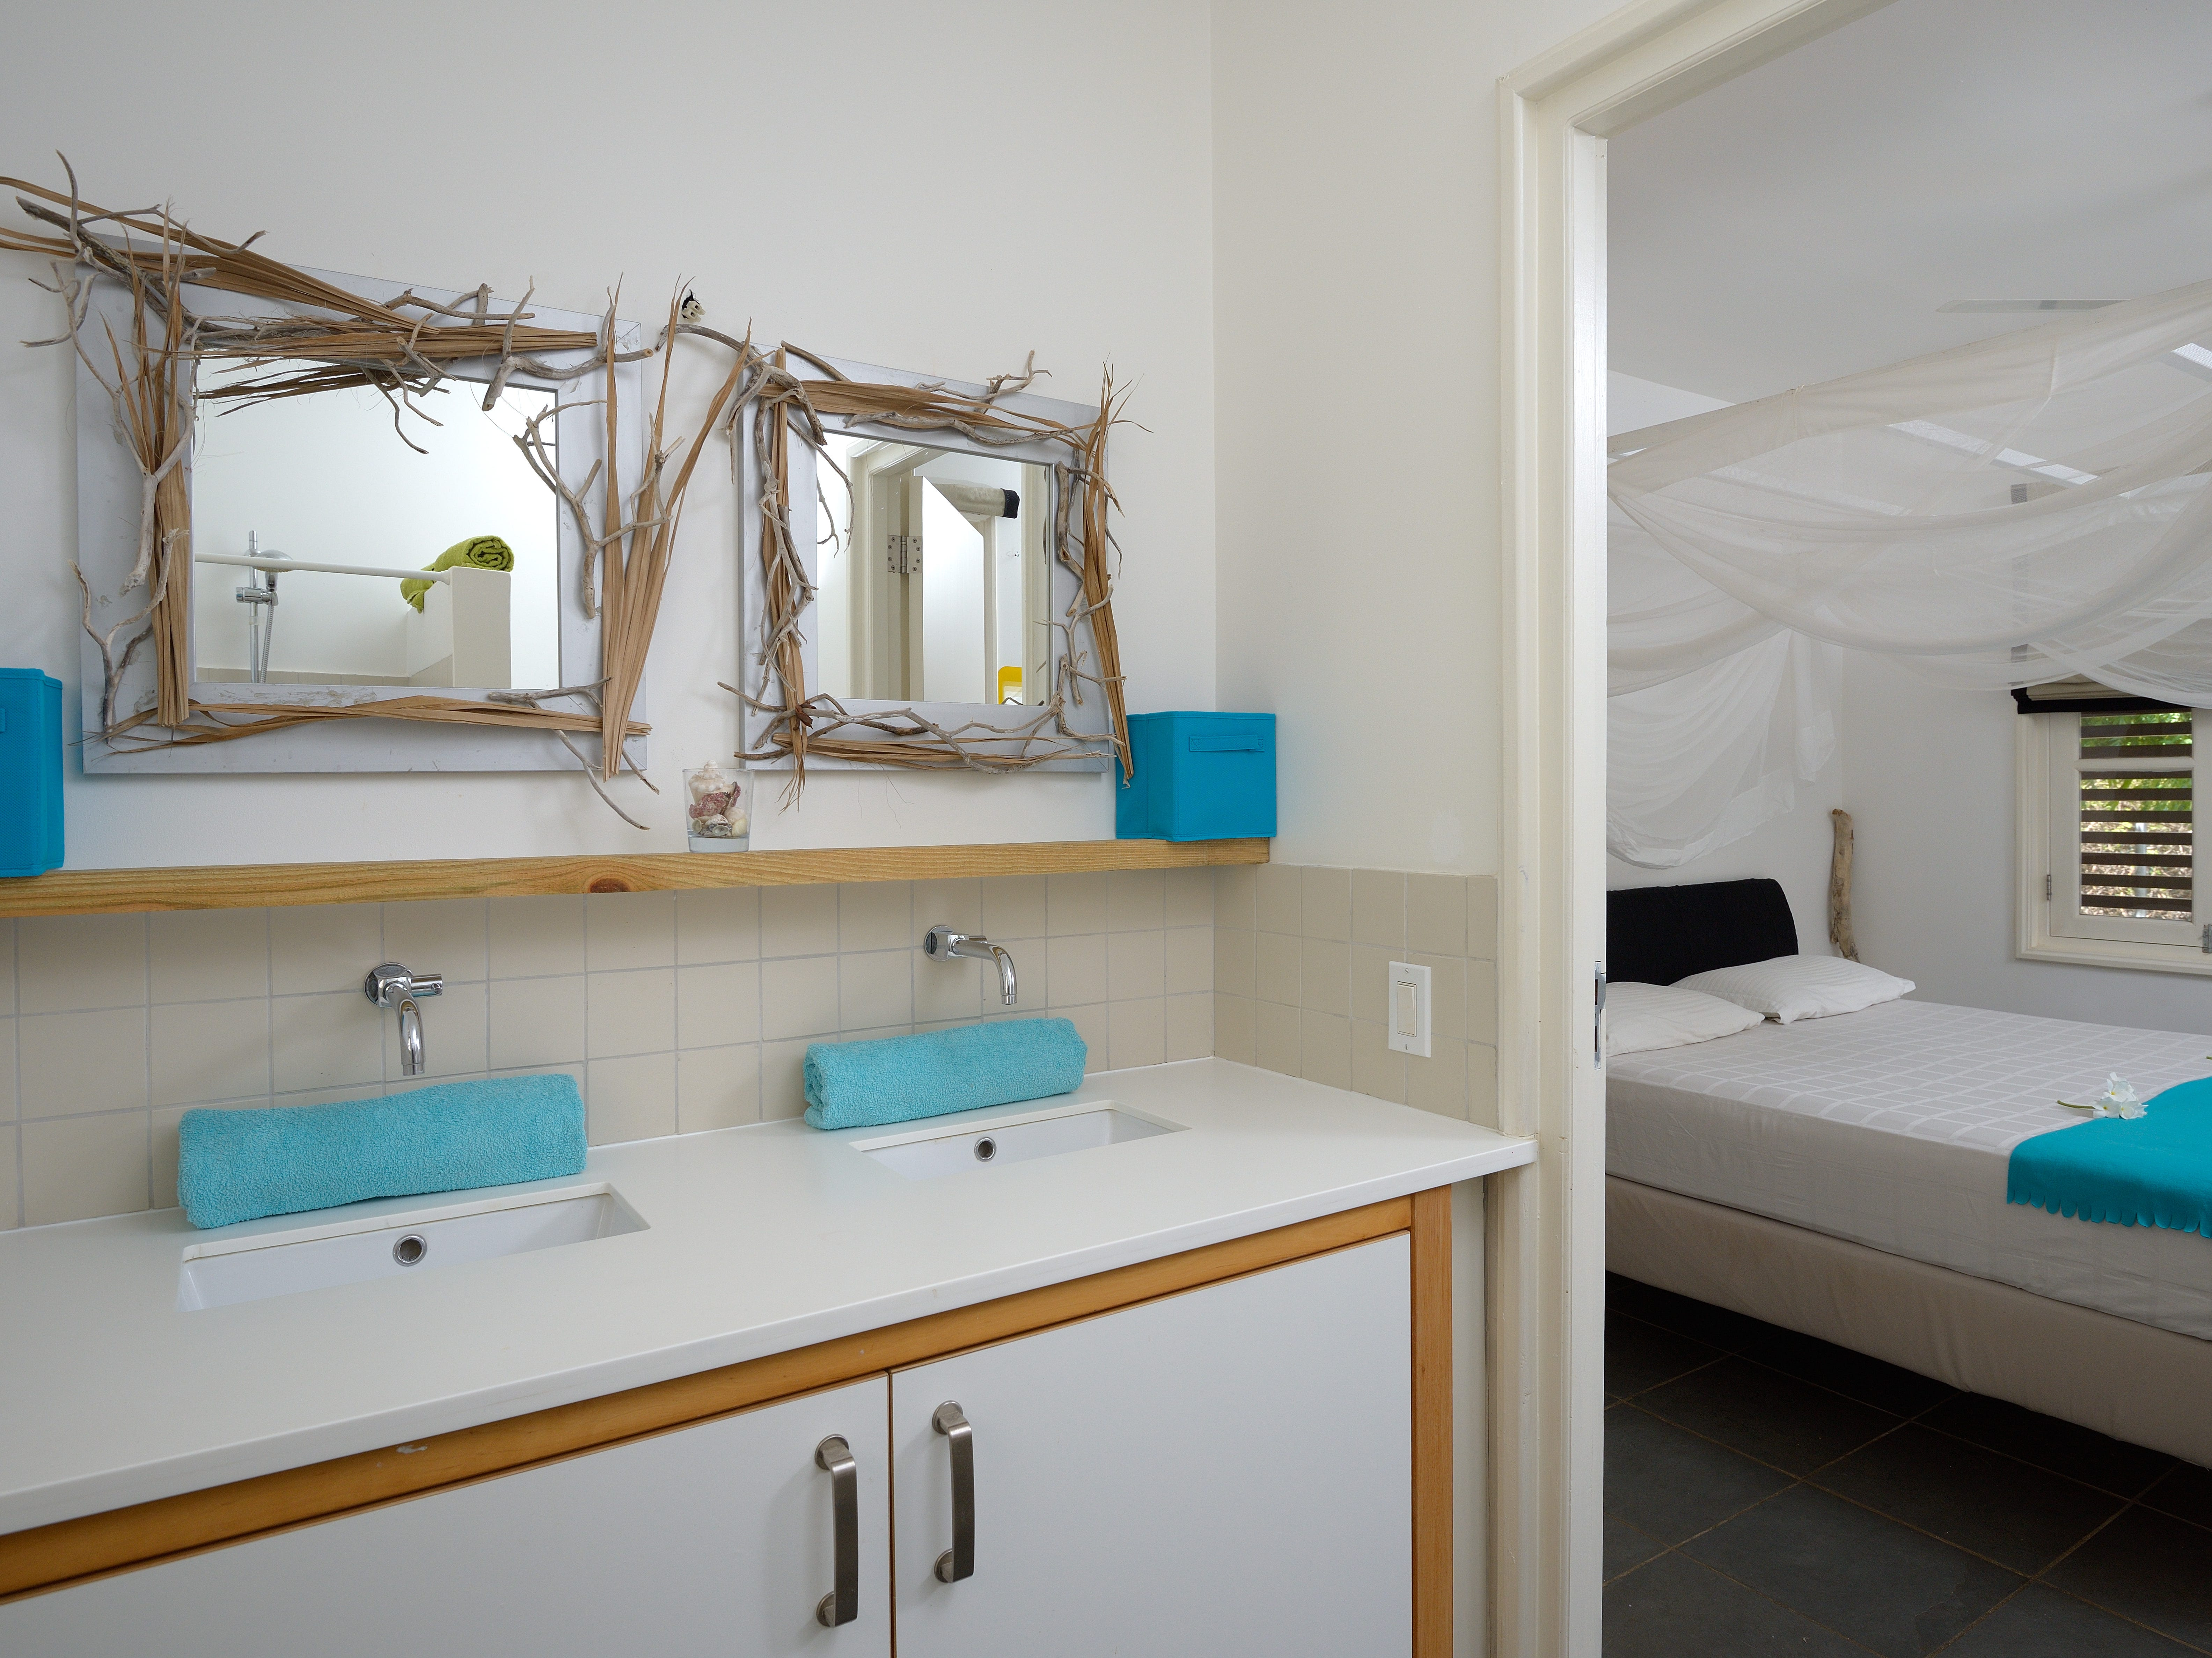 A bedroom and bathroom in the Bonaire bungalow